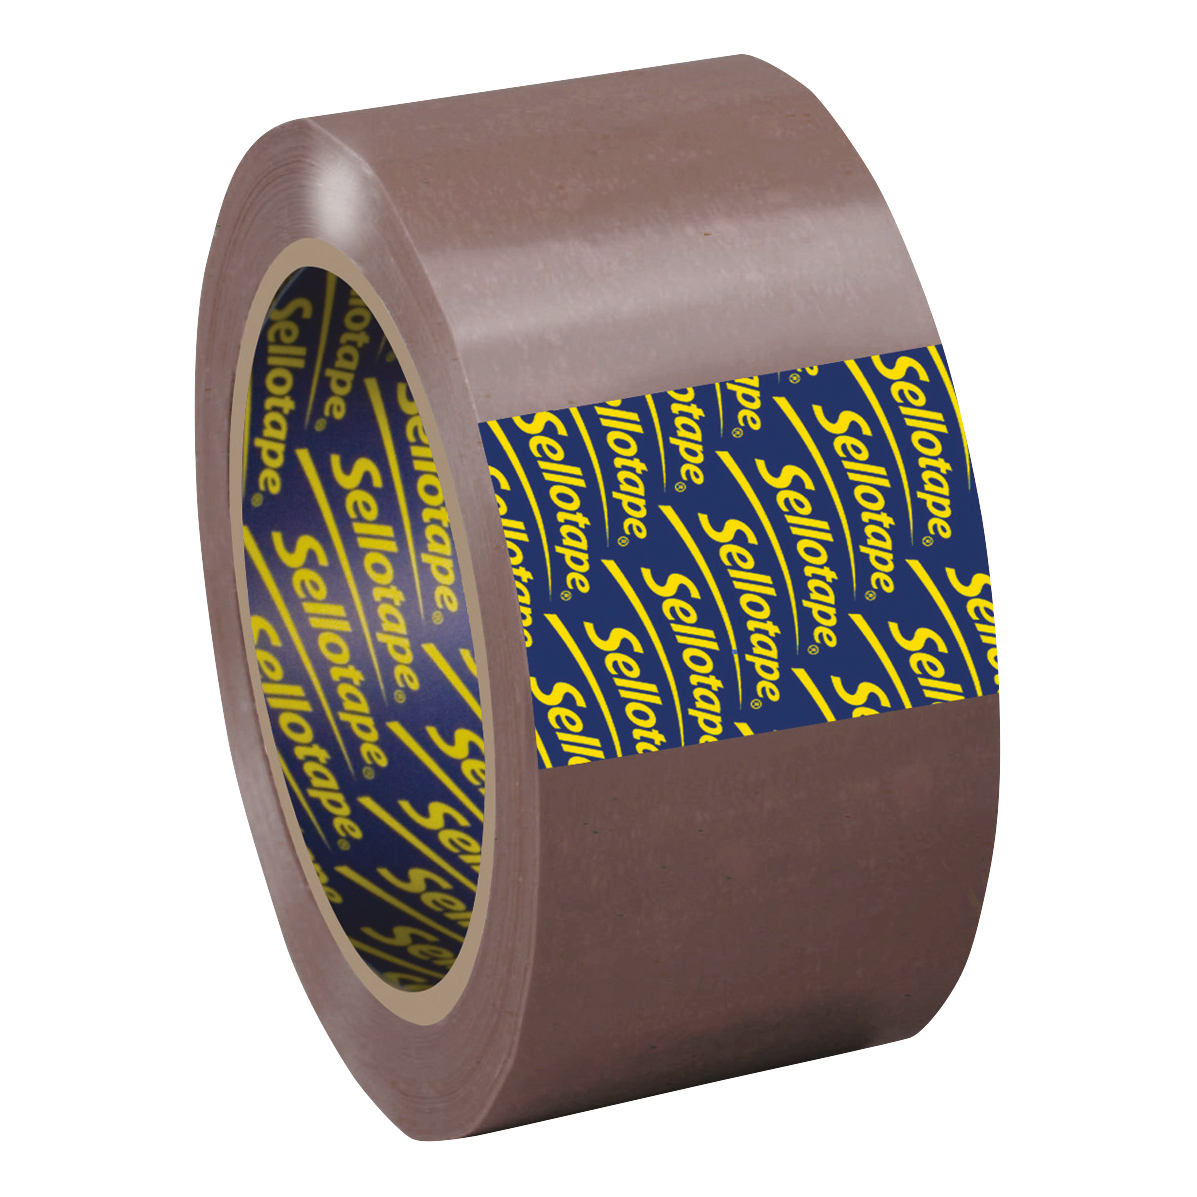 Sellotape Superseal Case Sealing Tape Polypropylene 50mmx66m Buff Ref 1445172 Pack 6